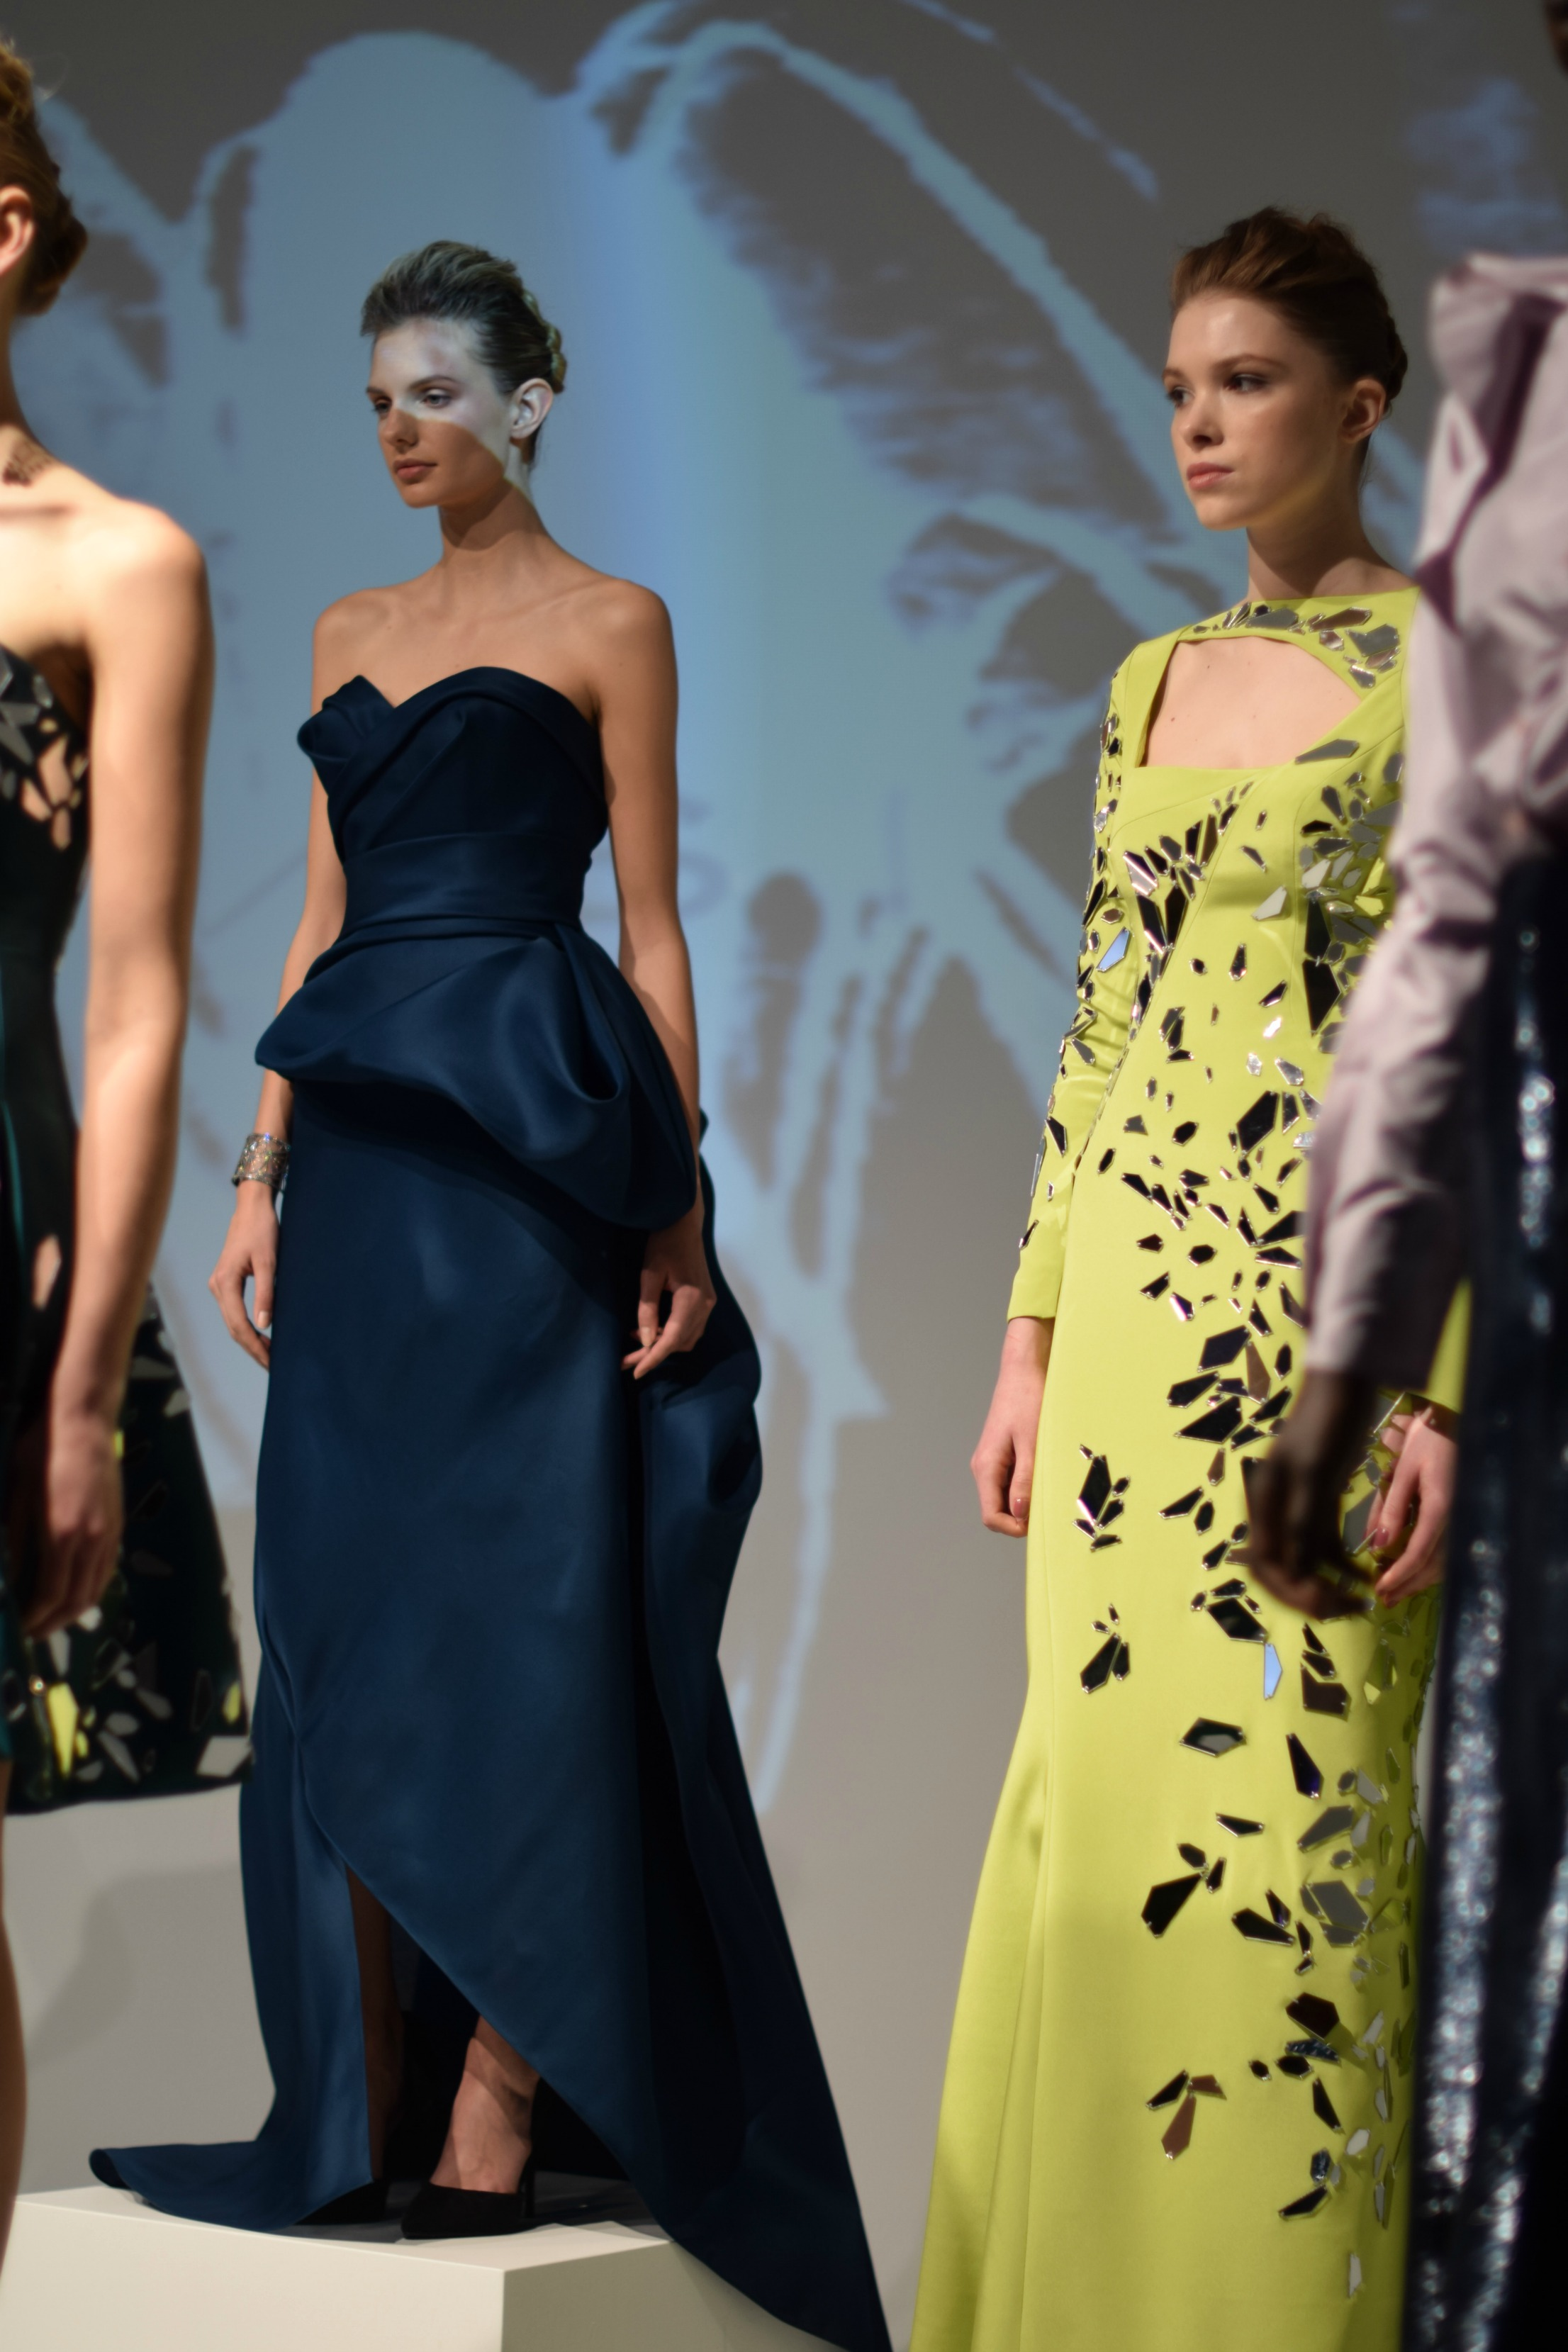 NYFW Rubin Singer Fashion Presentation Fall_Winter 2016 Louboutins _ Love Fashion Blog Esther Santer NYC Street Style Runway Models Collection Press Coverage Photos Details Dress Gown Beautiful Gorgeous Stunning Pretty Shop New York City Celebrities 8.jpg